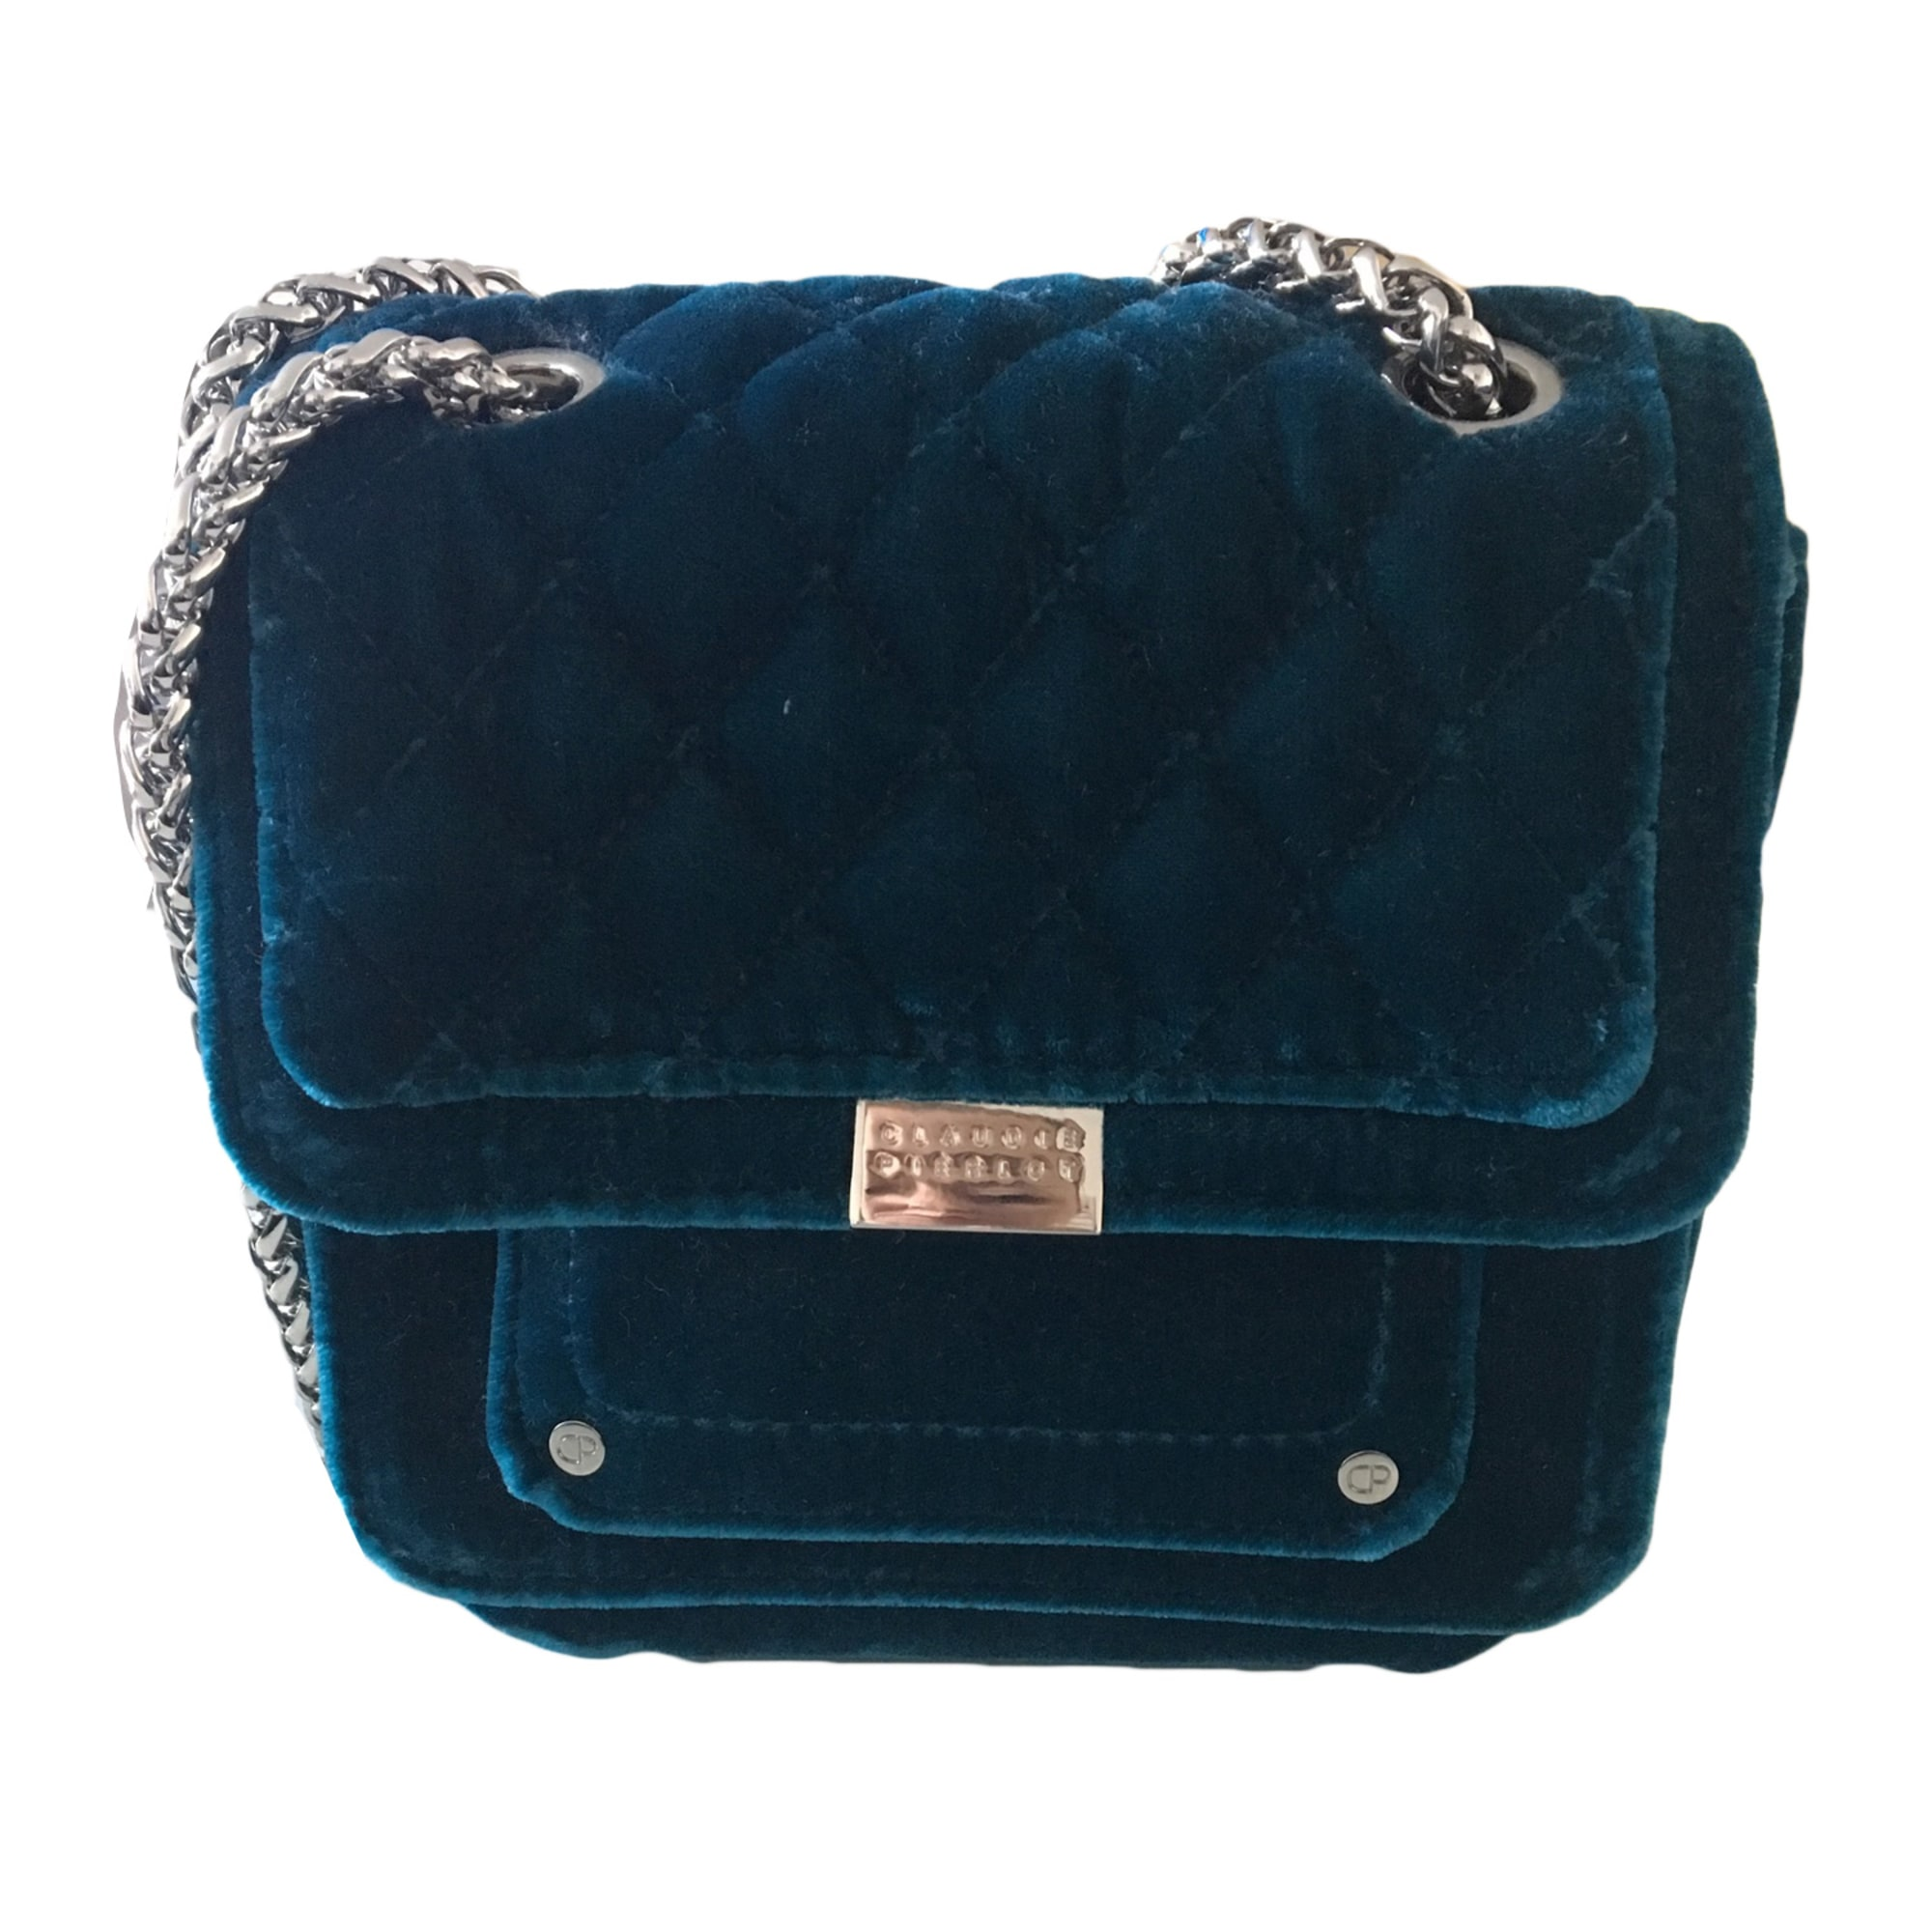 Non-Leather Shoulder Bag CLAUDIE PIERLOT Blue, navy, turquoise